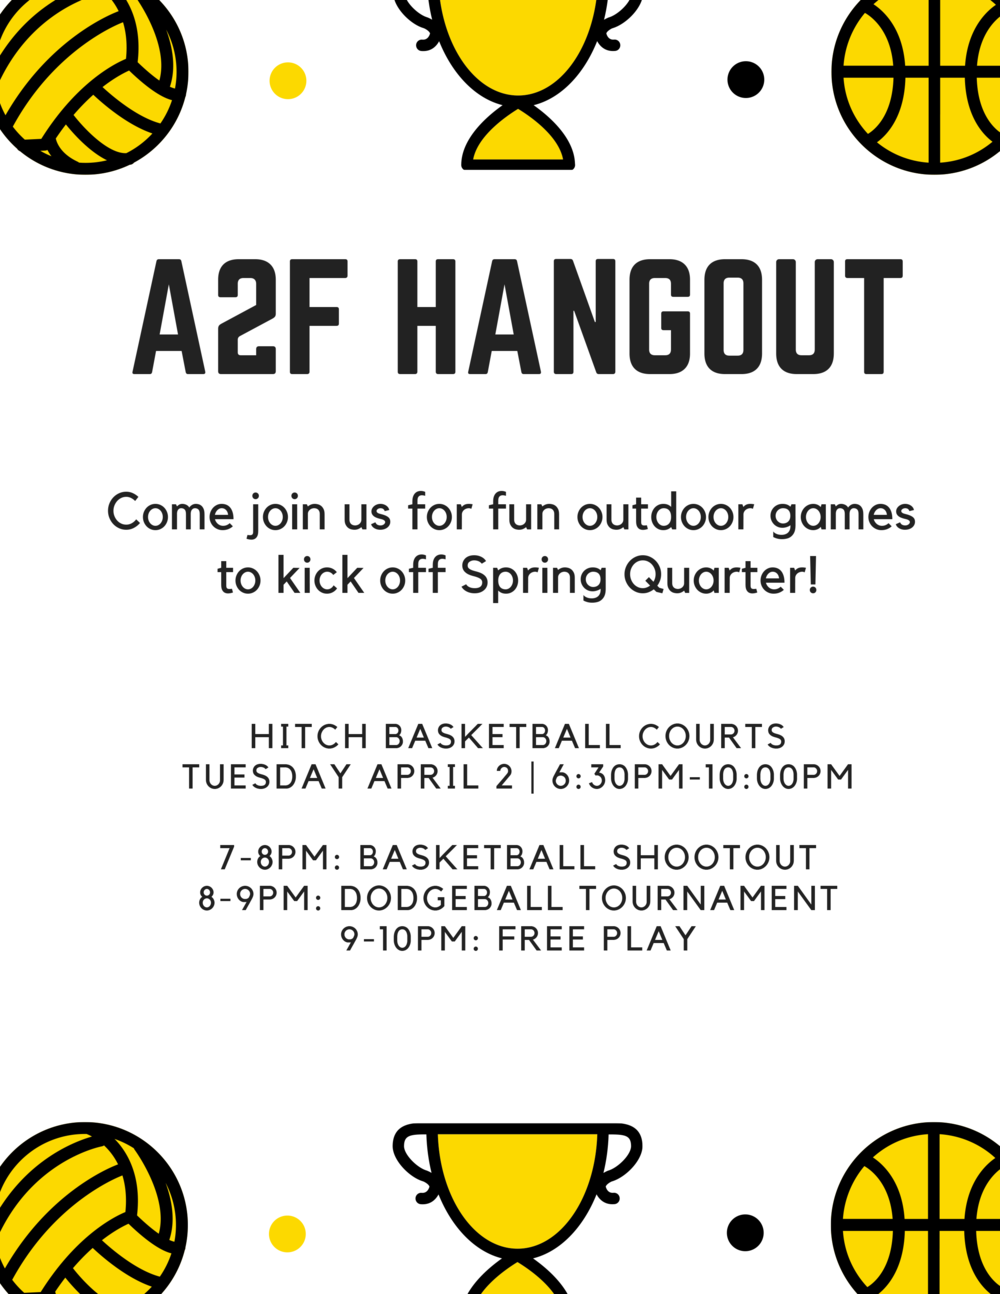 Come join us as we kick of the Spring quarter with fun and games. We'll be at  Hitch Basketball Courts  from  6:30 pm to 10:00 pm.